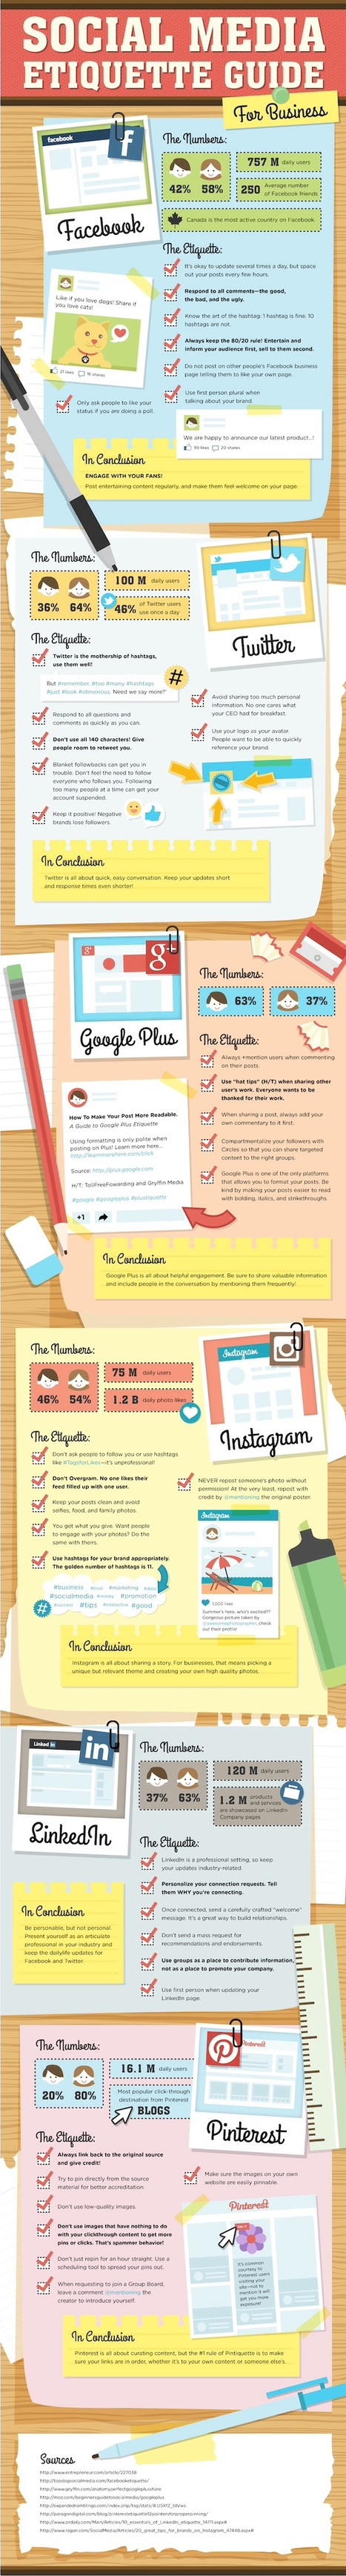 Social Media Marketing: Guide To Etiquette #infographic | MarketingHits | Scoop.it